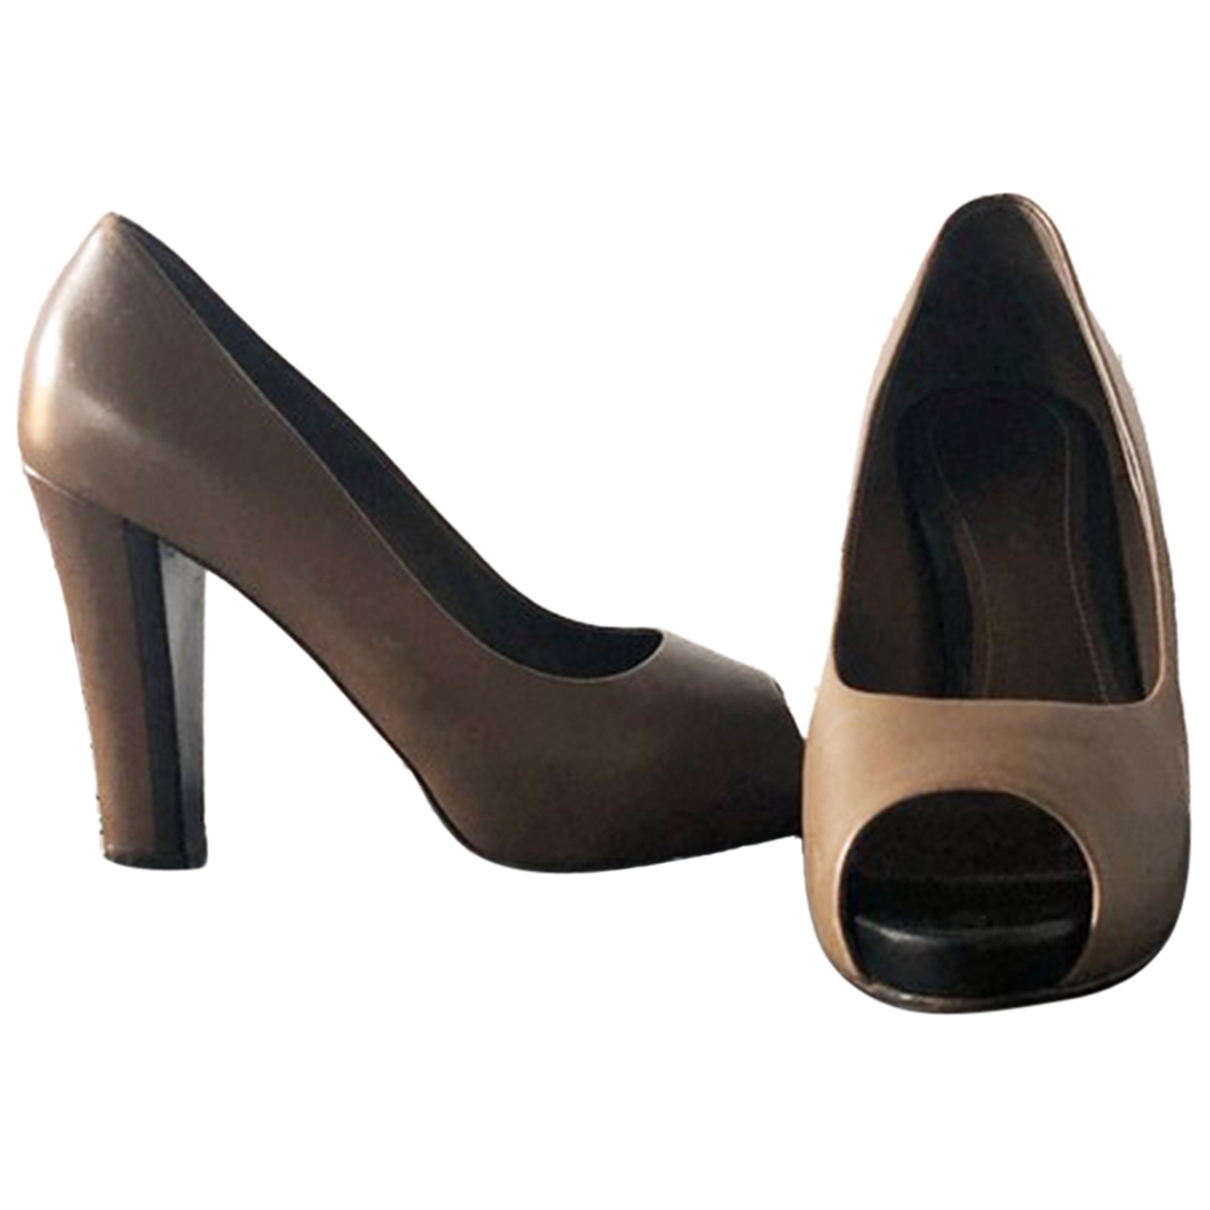 Loro Piana \N Brown Leather Heels for Women 39 EU